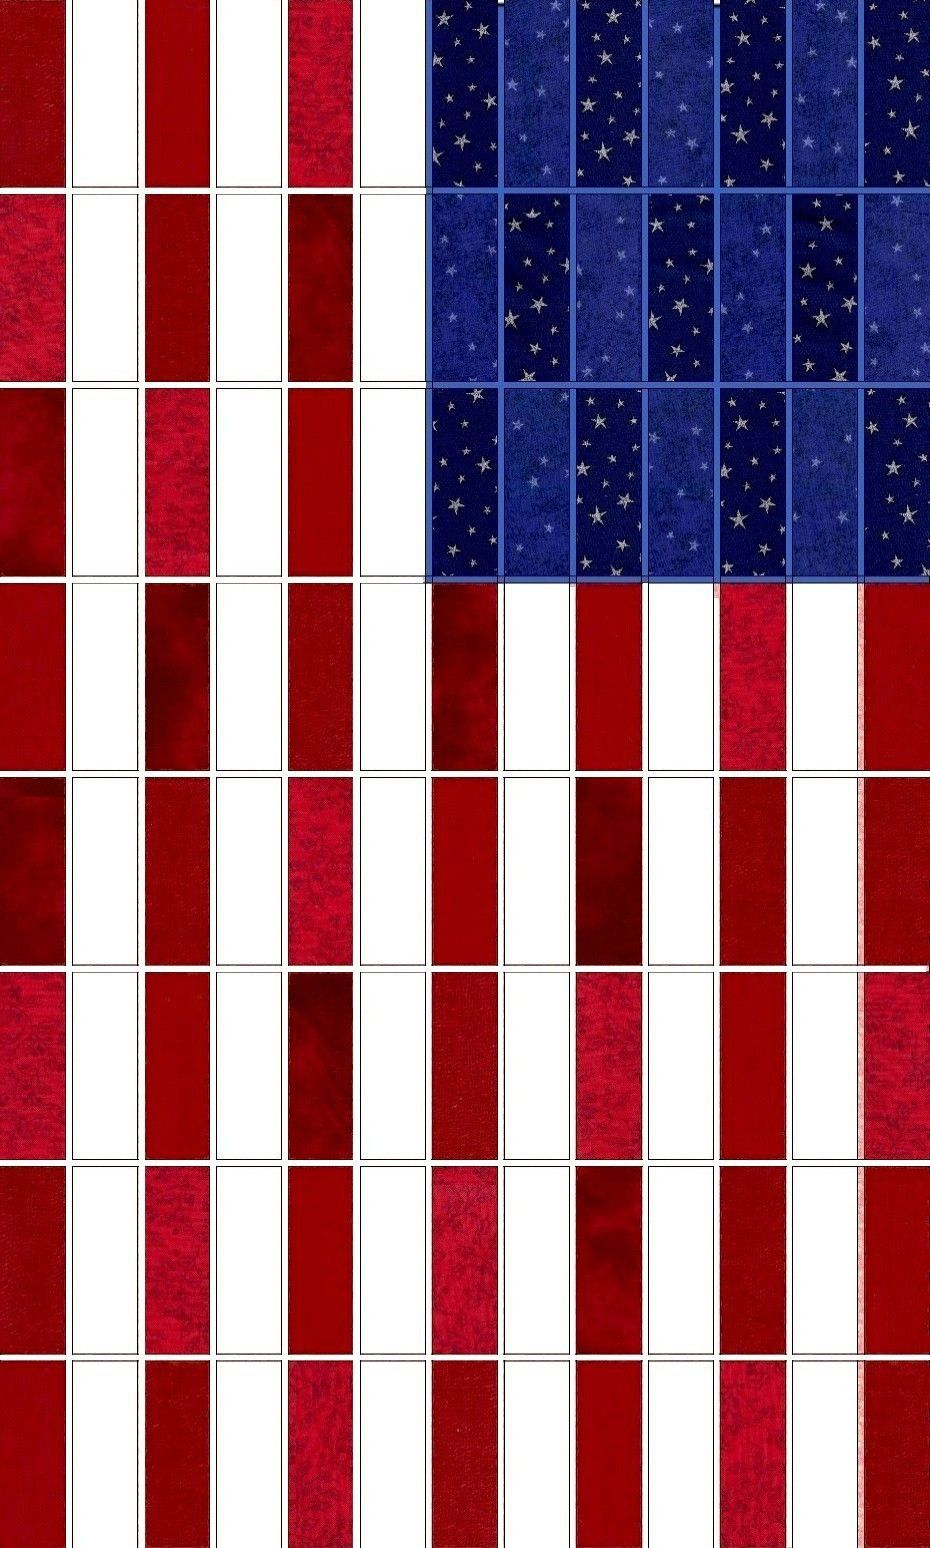 American Flag Prefringed Rag Quilt Kit Quilting Pinterest Beautiful, Mosaics and American flag